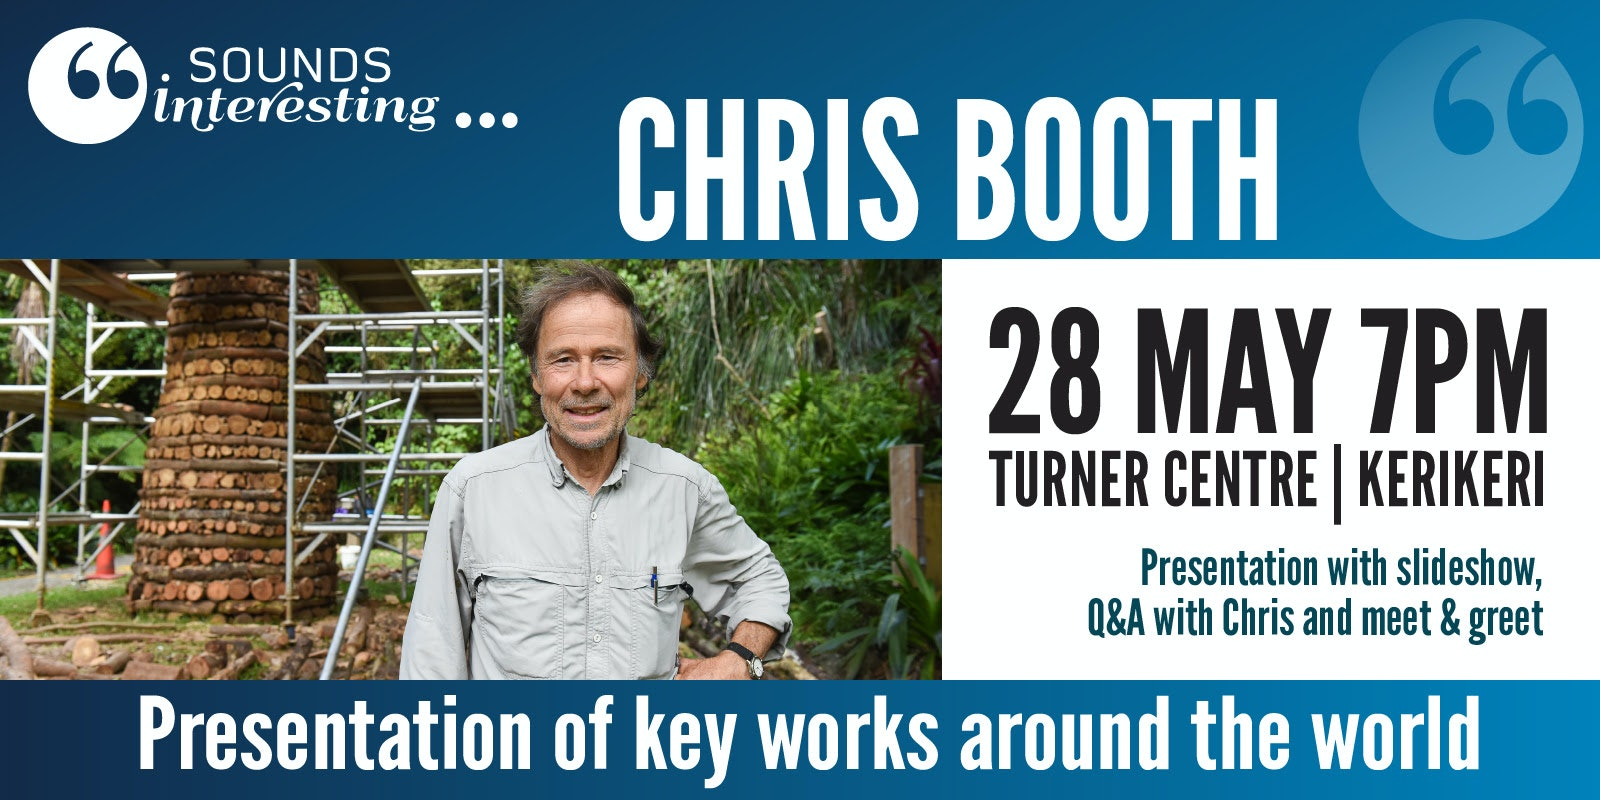 Sounds Interesting - Chris Booth